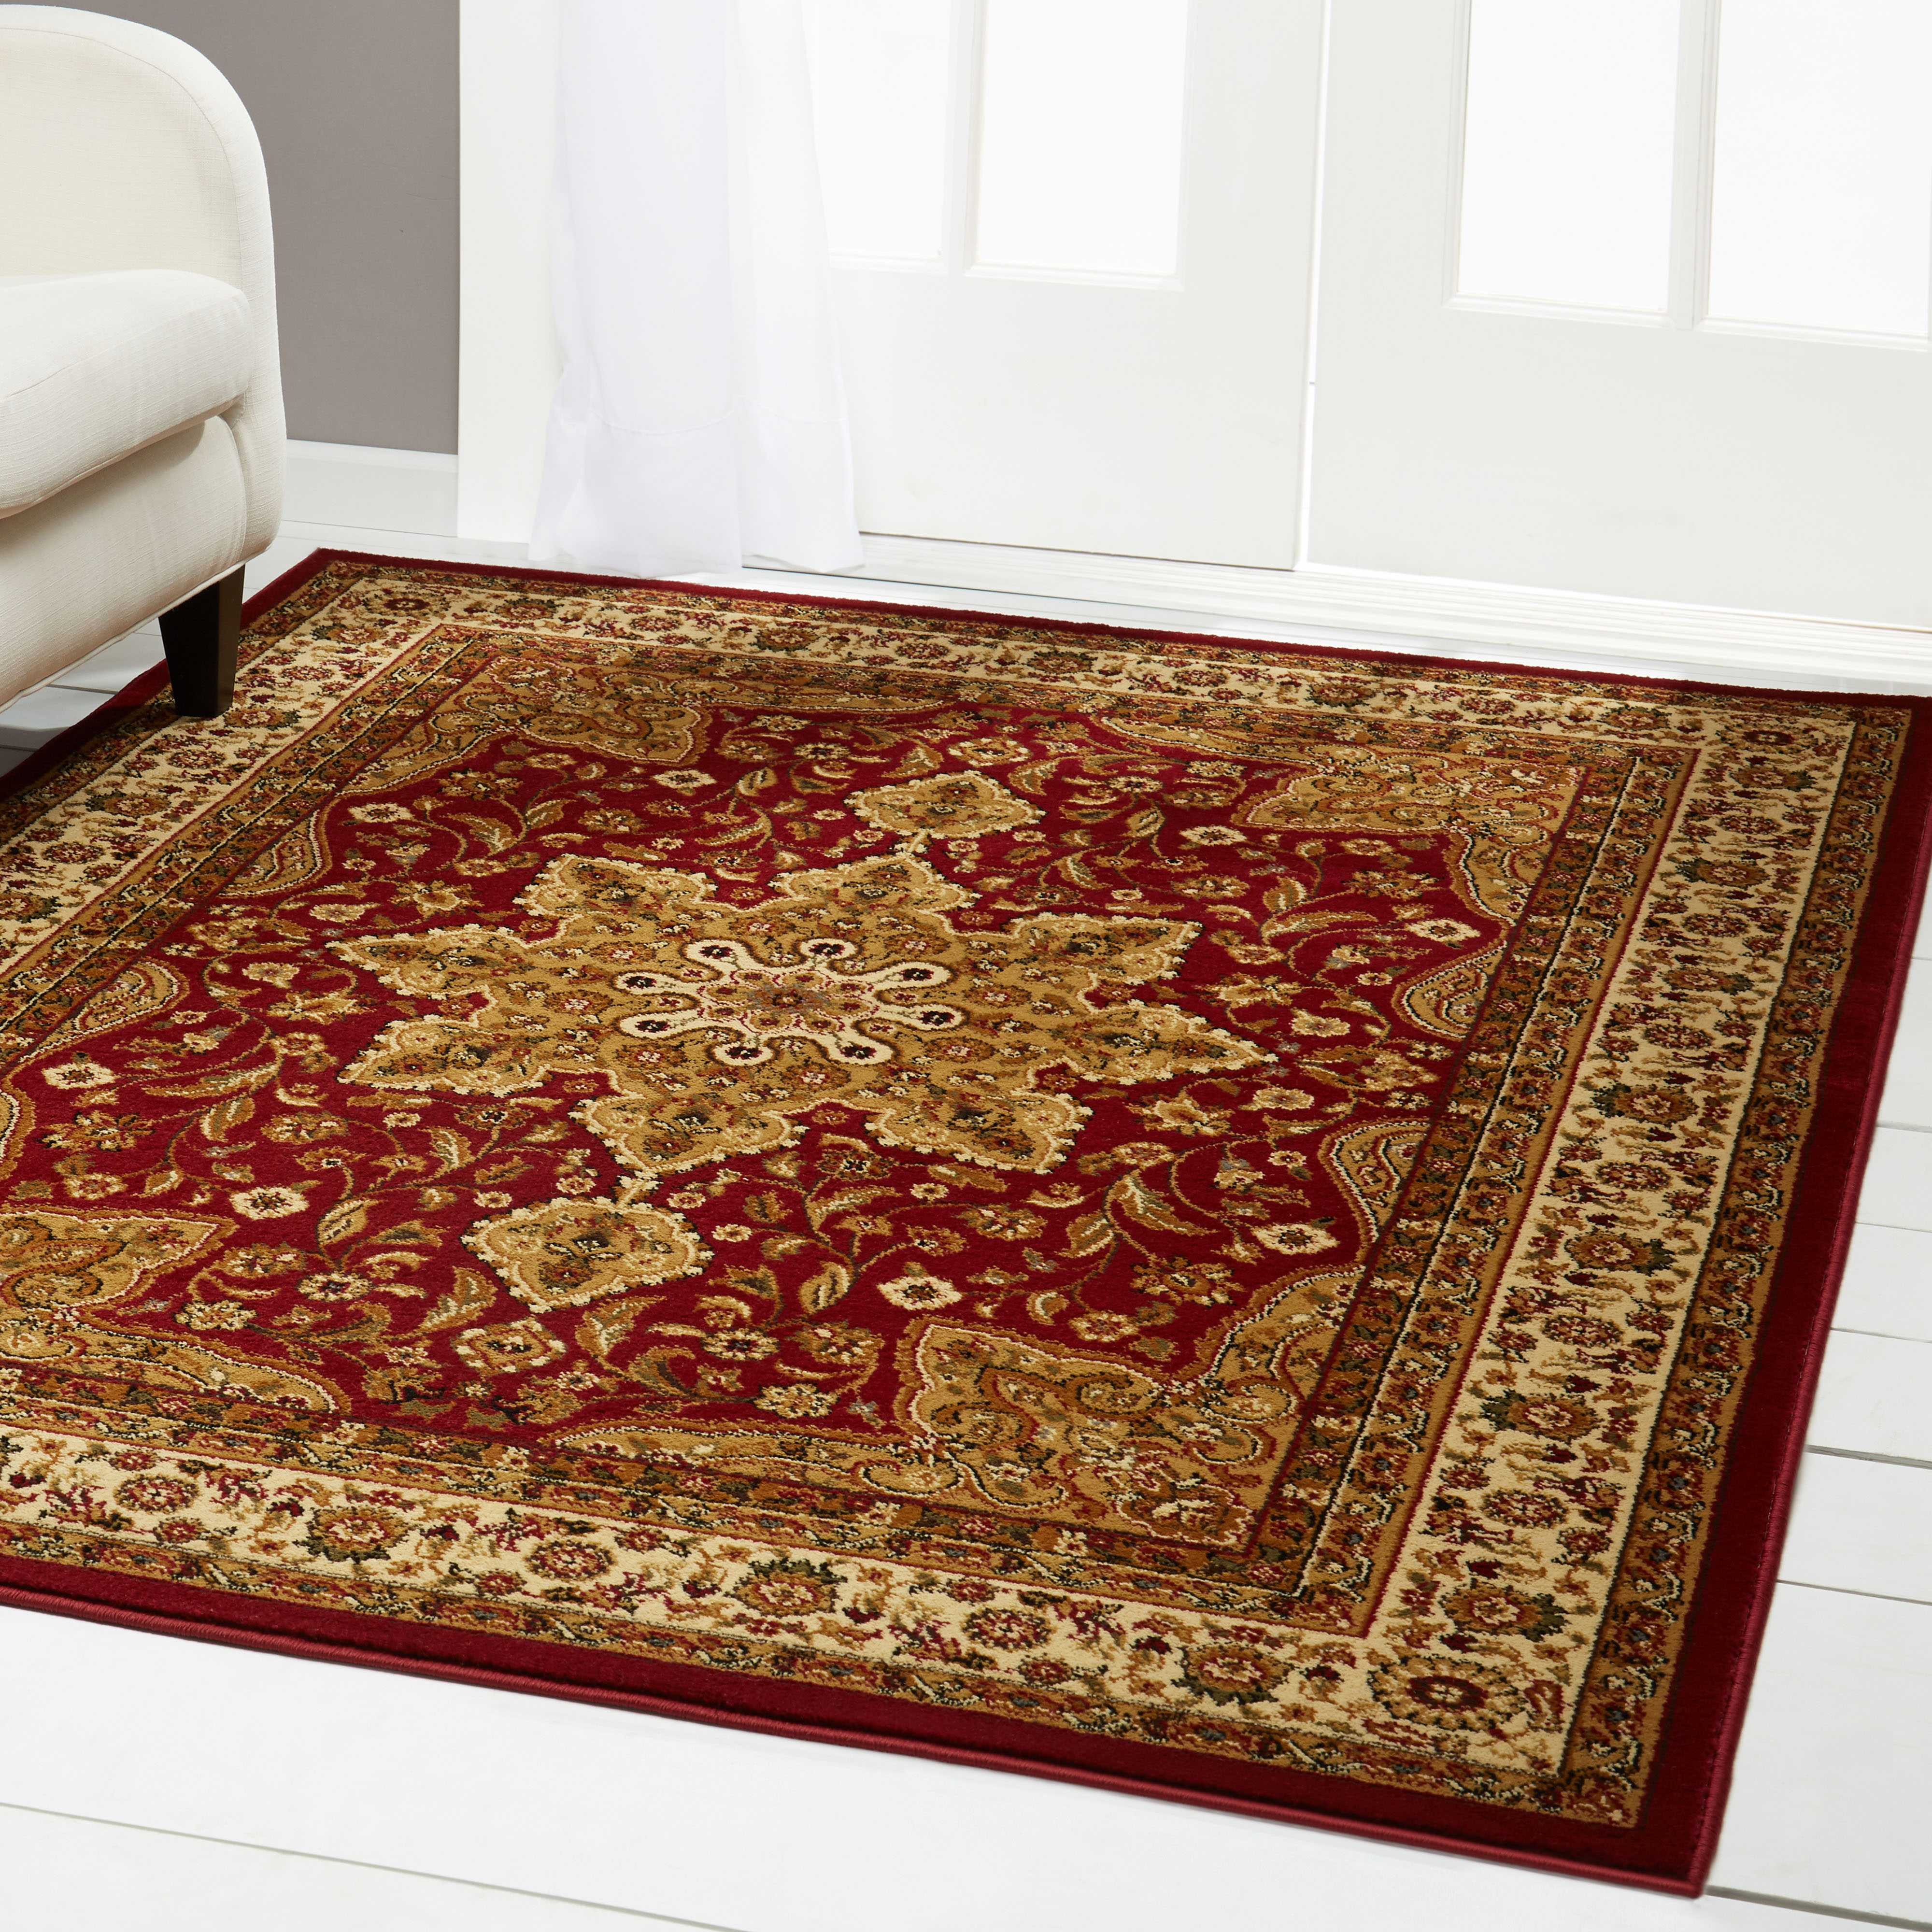 Home Dynamix Royalty Collection 8083-100 Area Rug by Home Dynamix